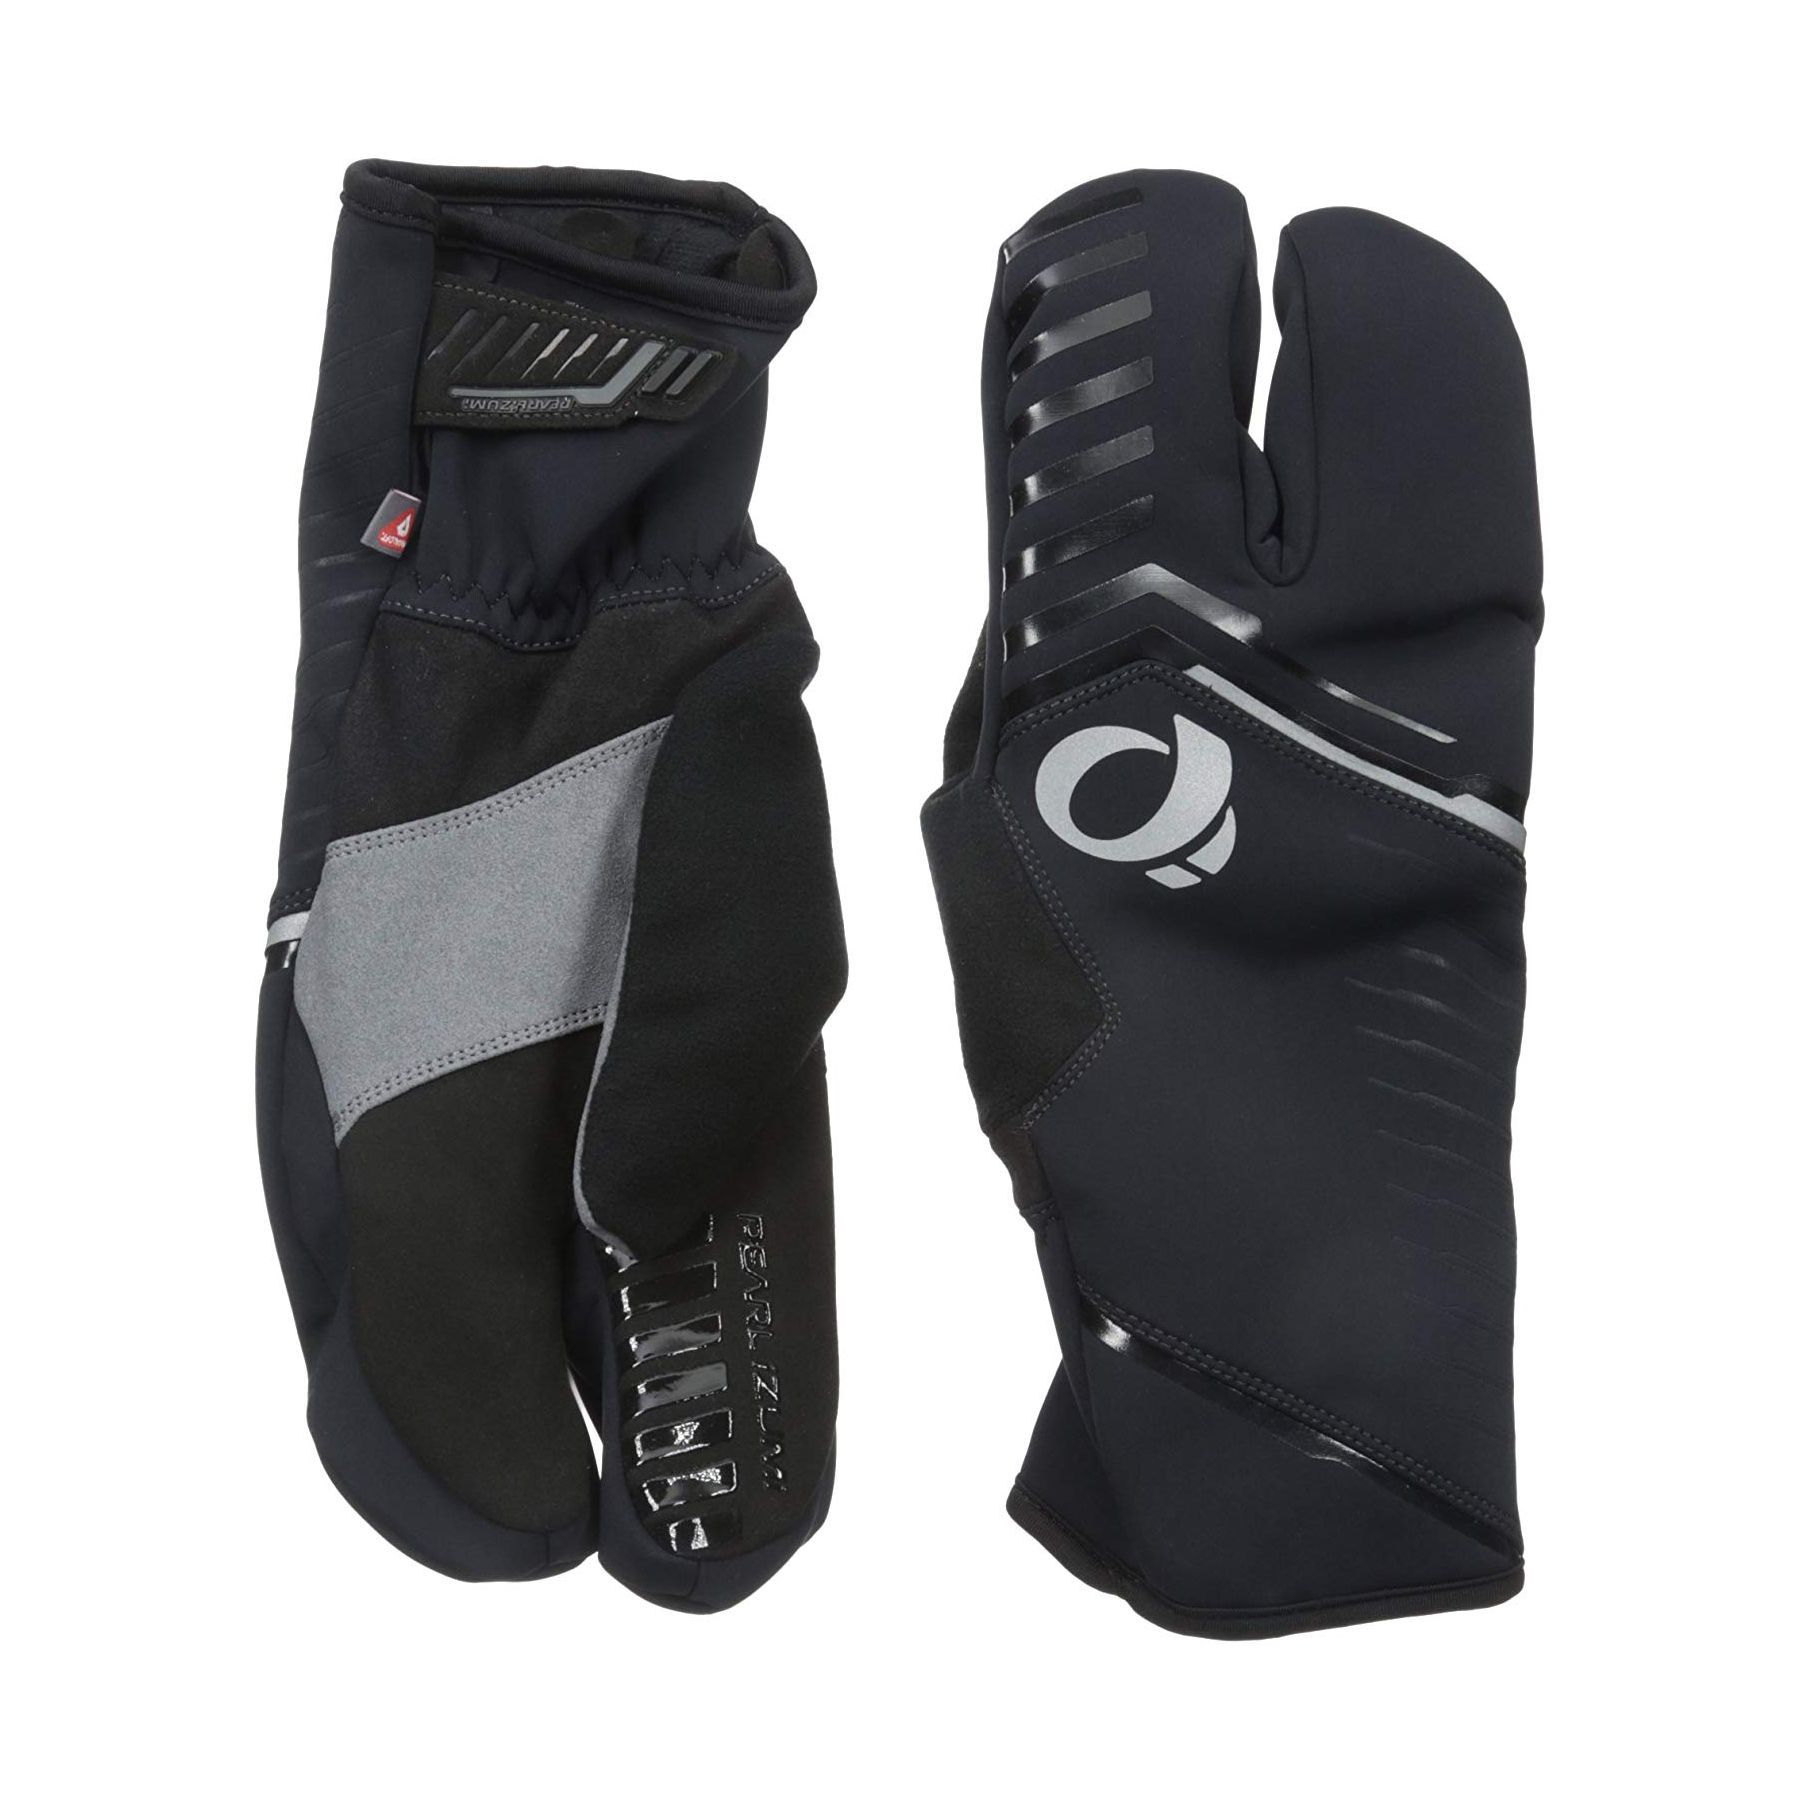 finest selection cb12b aef1a Running Gloves   Best Winter Gloves for Runners